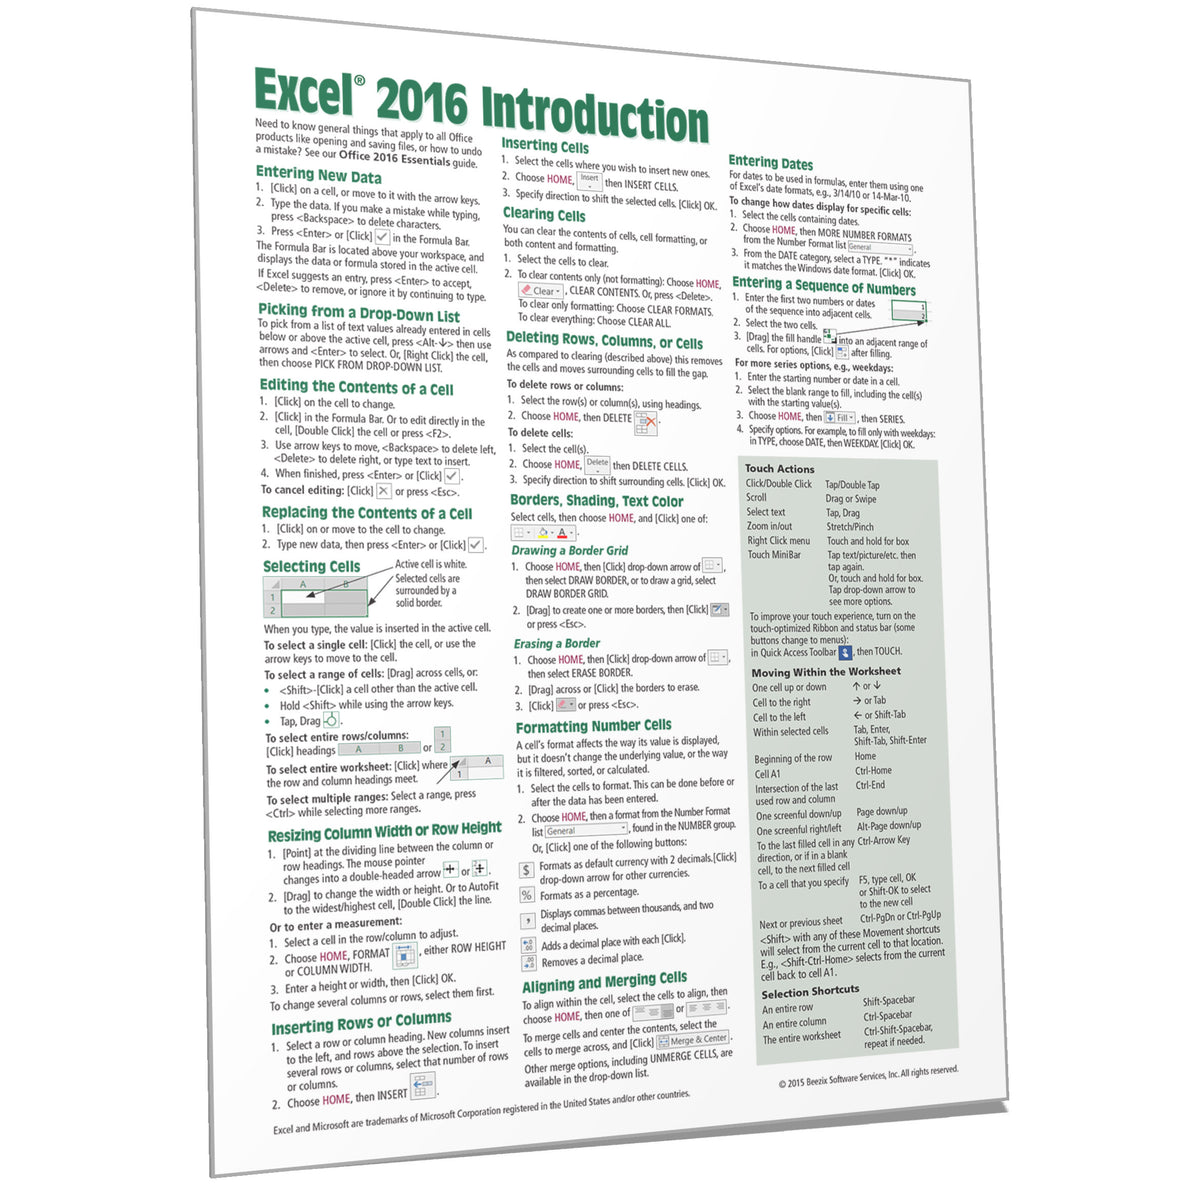 Excel 2016 Quick Reference, Training Guide, Cheat Sheet